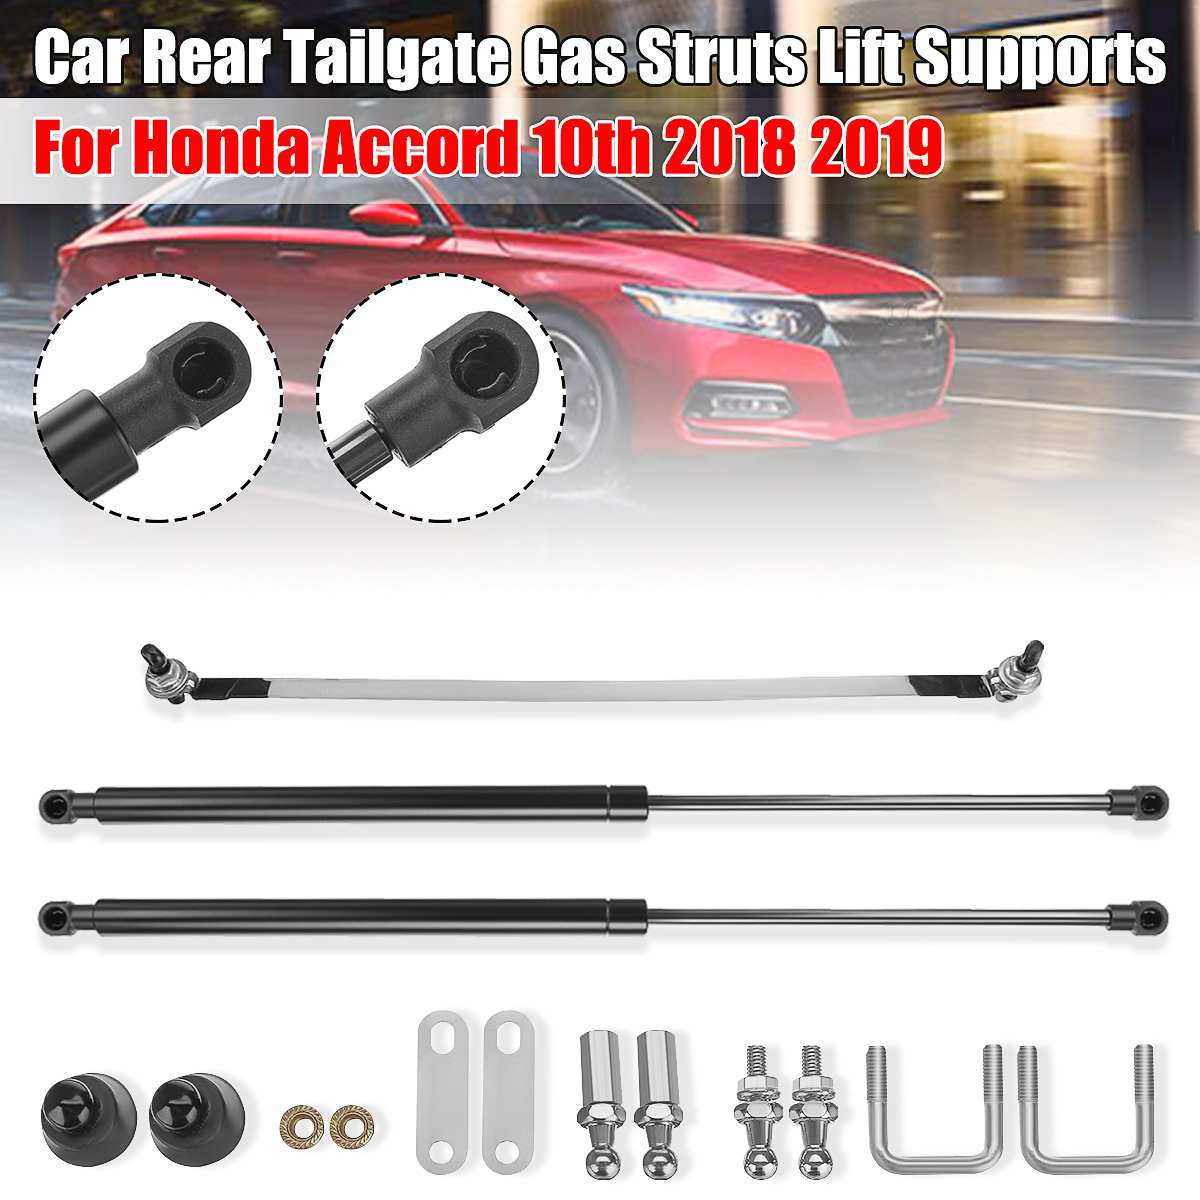 // TRUNK-LIFT SPRING// PRESSURE SHOCK ABSORBERS Tailgate 2x Gas Strut